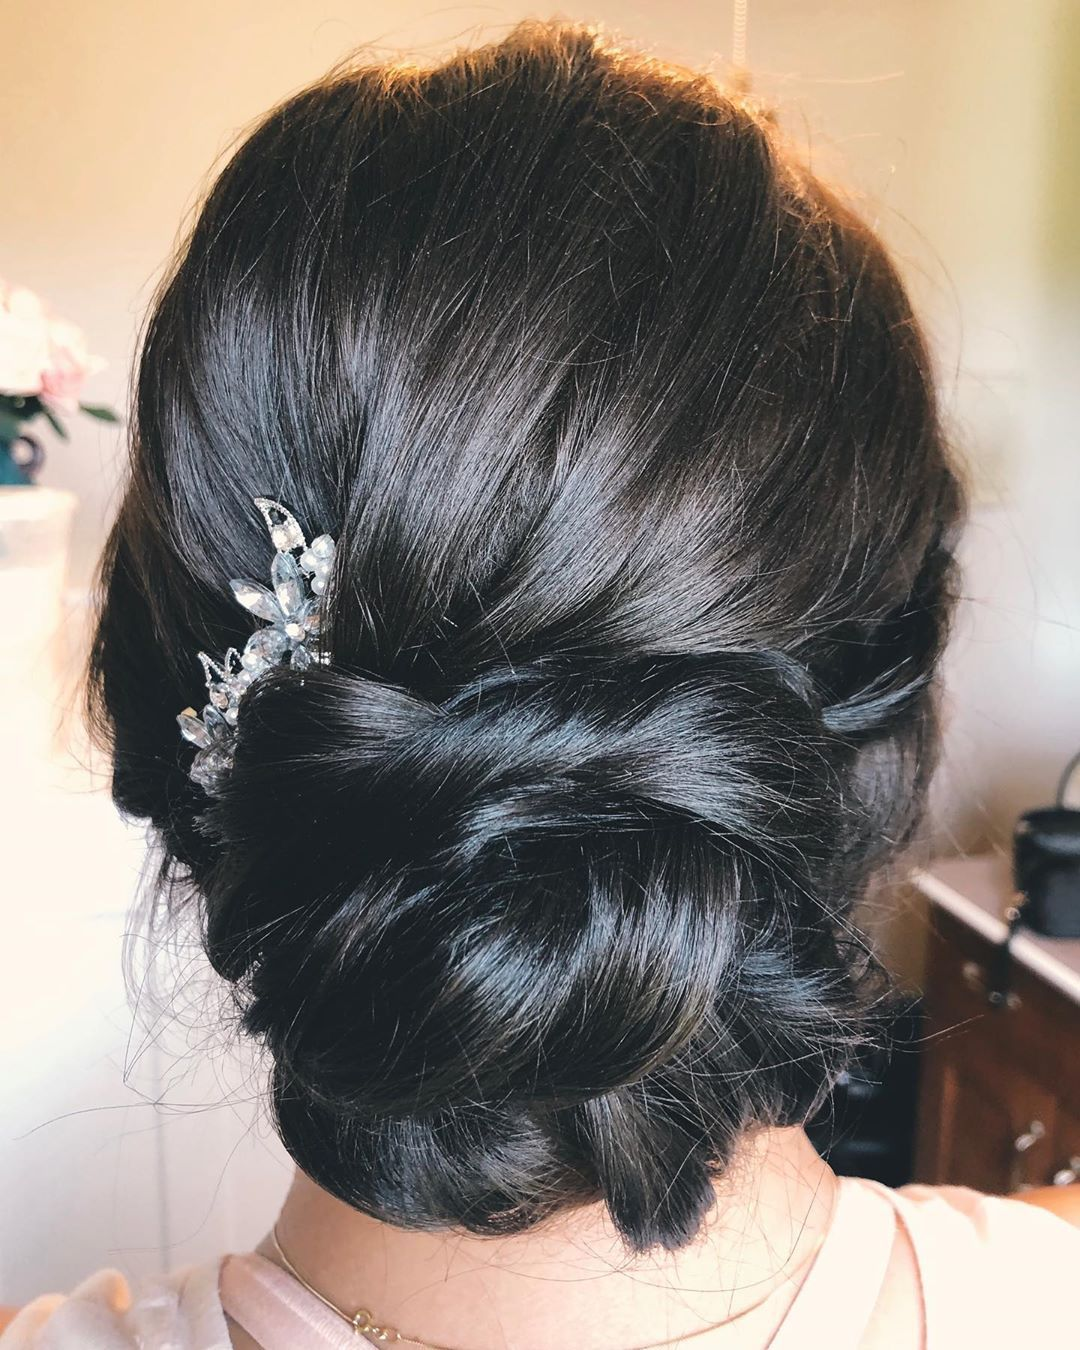 Low Updo For Brunettes Dark Hair Black Hair Twisted Bun Low Bridesmaid Updo Bridal Updo Low Bun Hair Twist Bun Black Hair Updo Hairstyles Hair Twists Black